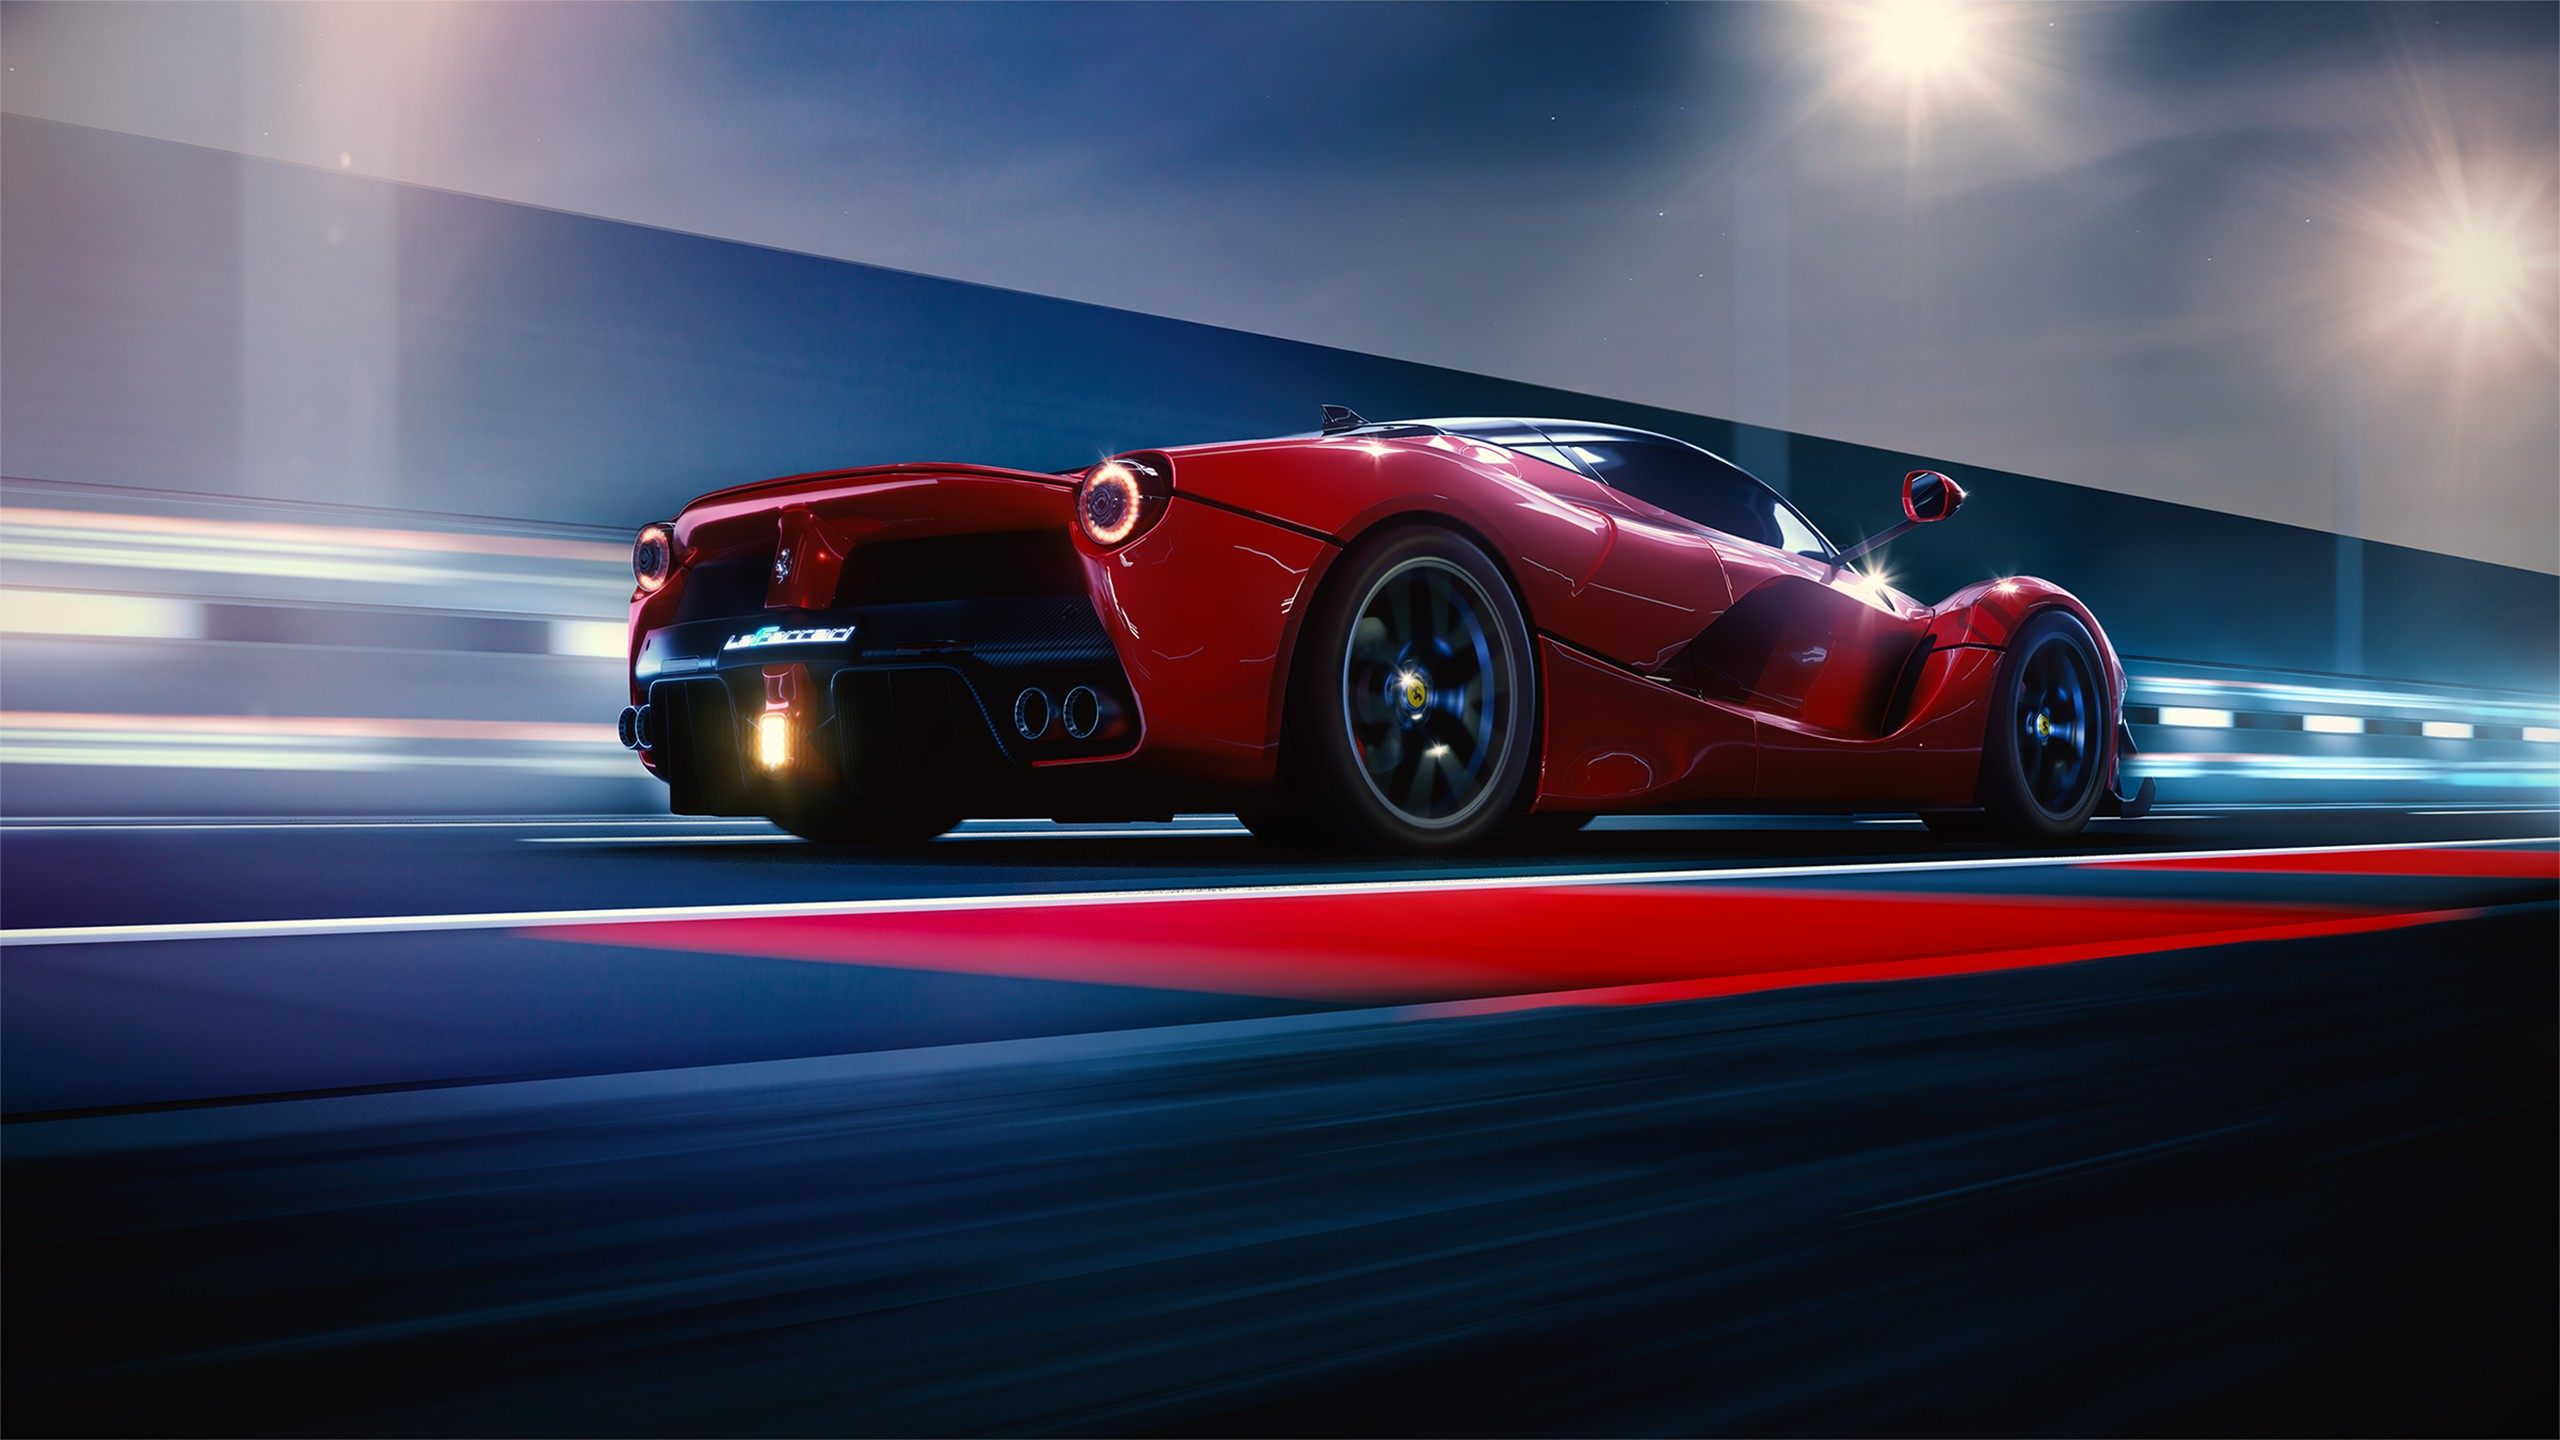 3d Wallpapers In Hd Download Laferrari Wallpapers Hd Wallpapers Id 26517